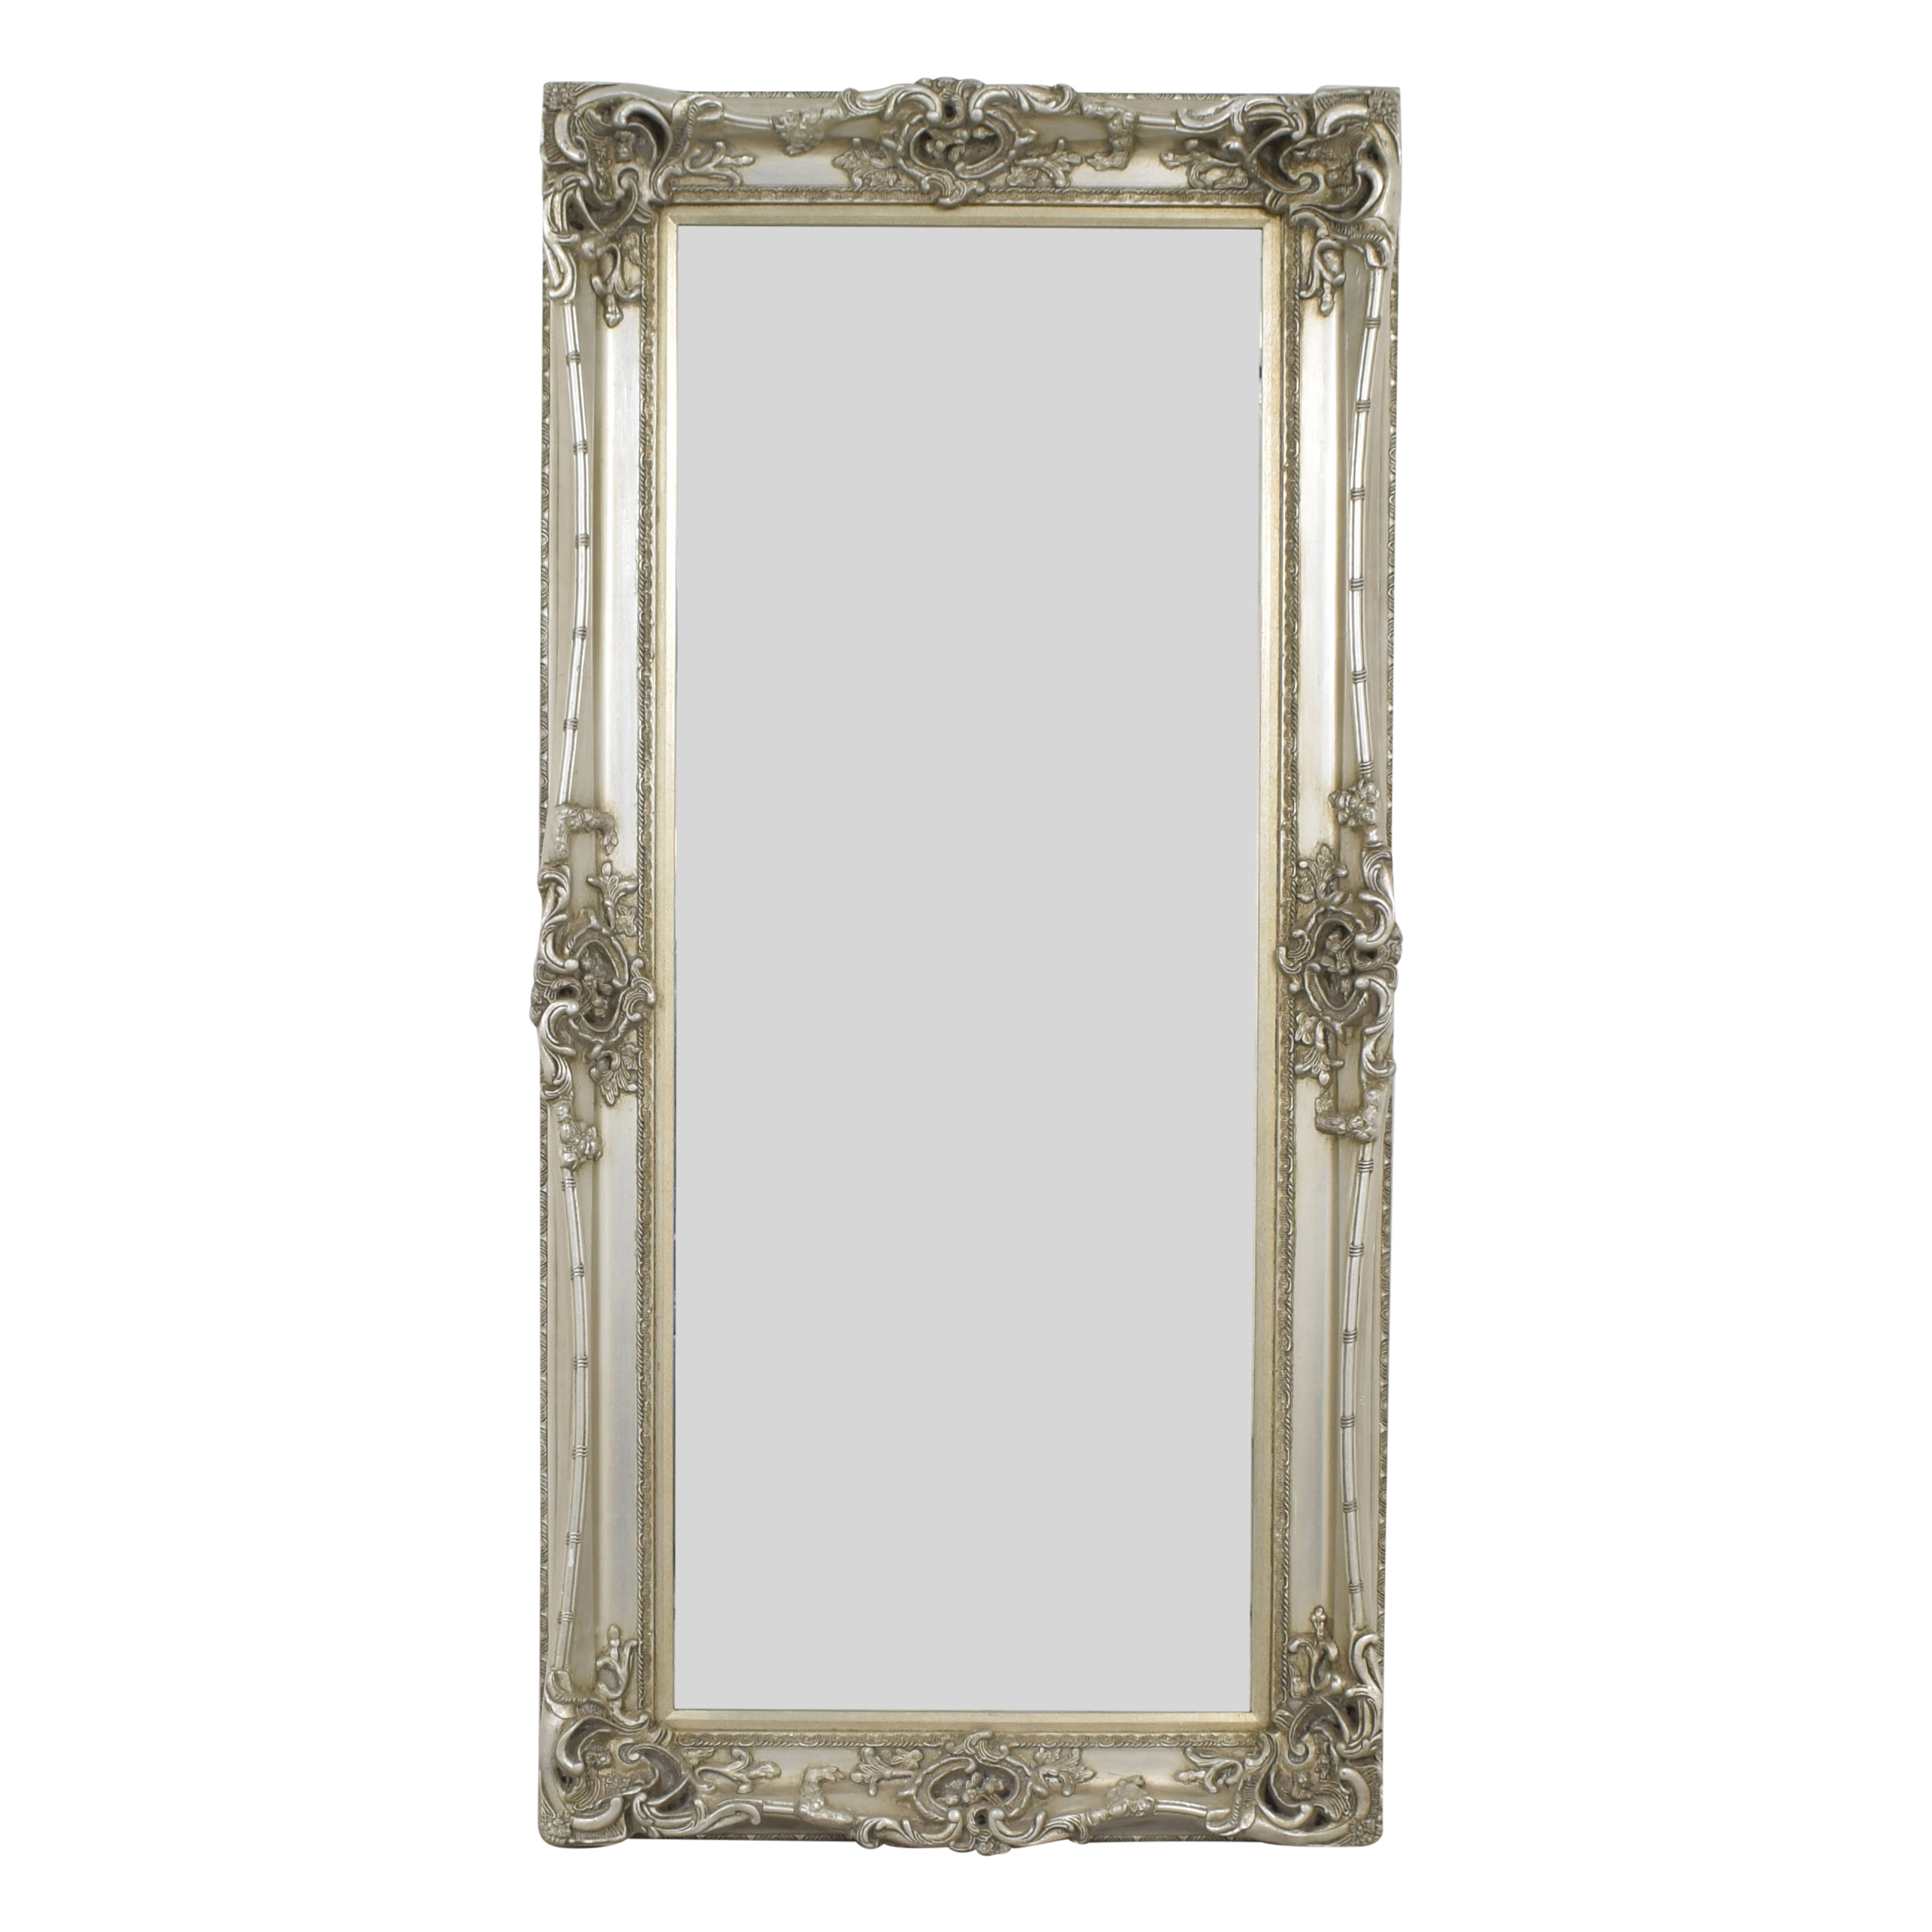 Hookes Antique Style Floor Mirror coupon